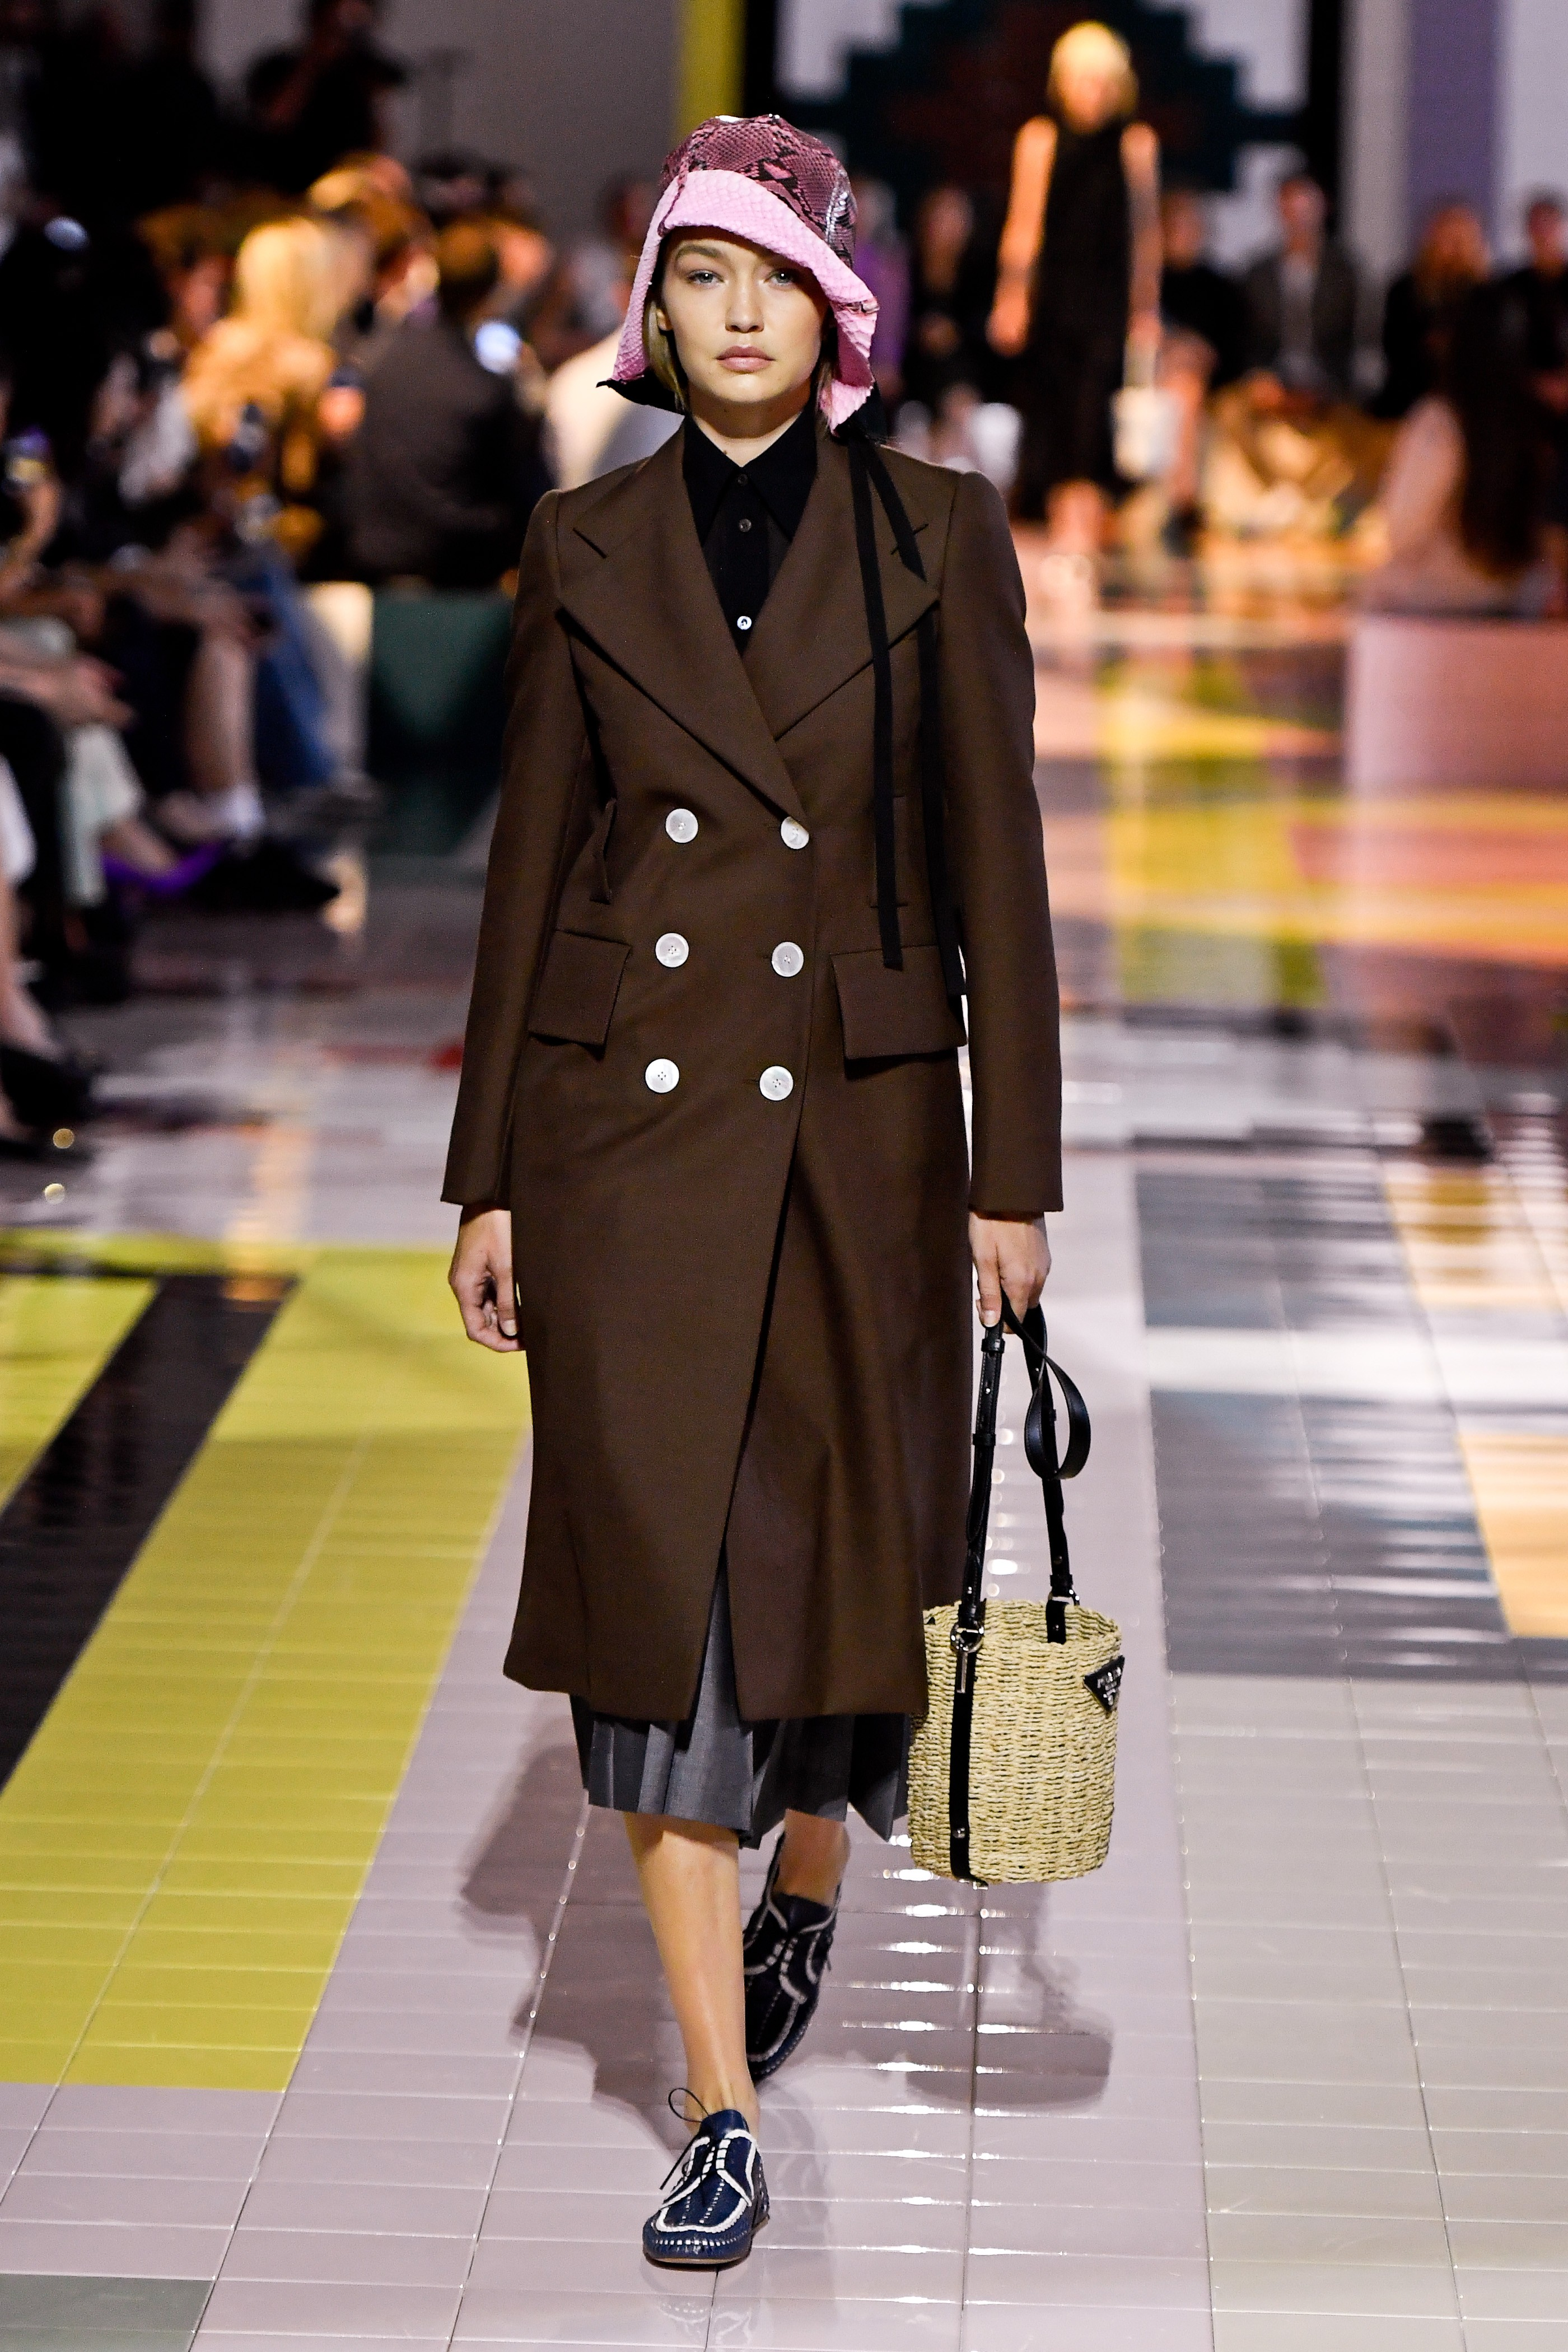 Gigi Hadid no desfile da Prada (Foto: Getty Images)